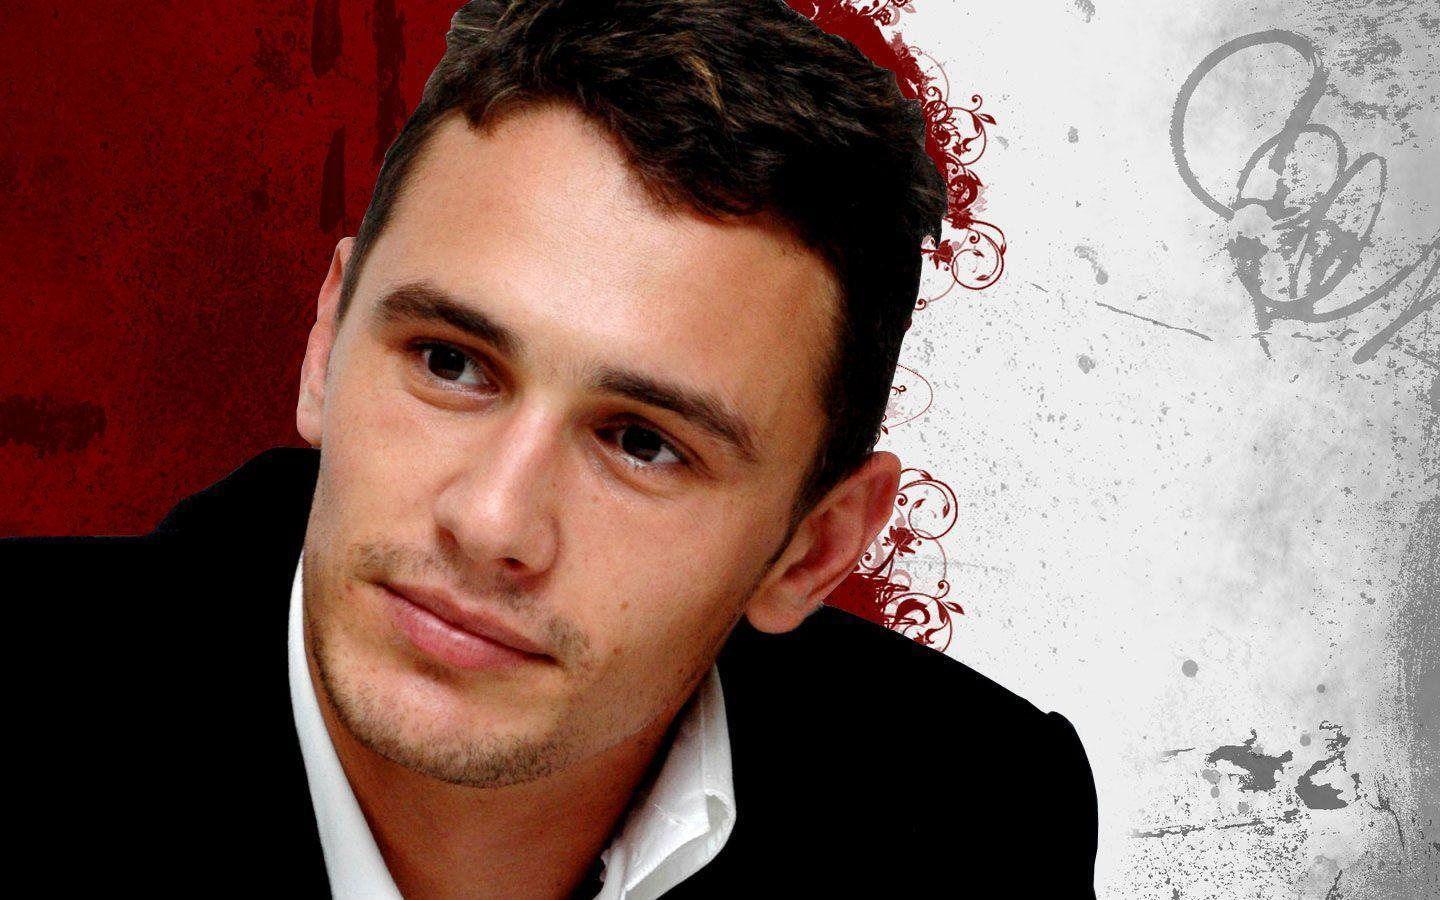 Wallpapers of male celebrities of hollywood: James Franco